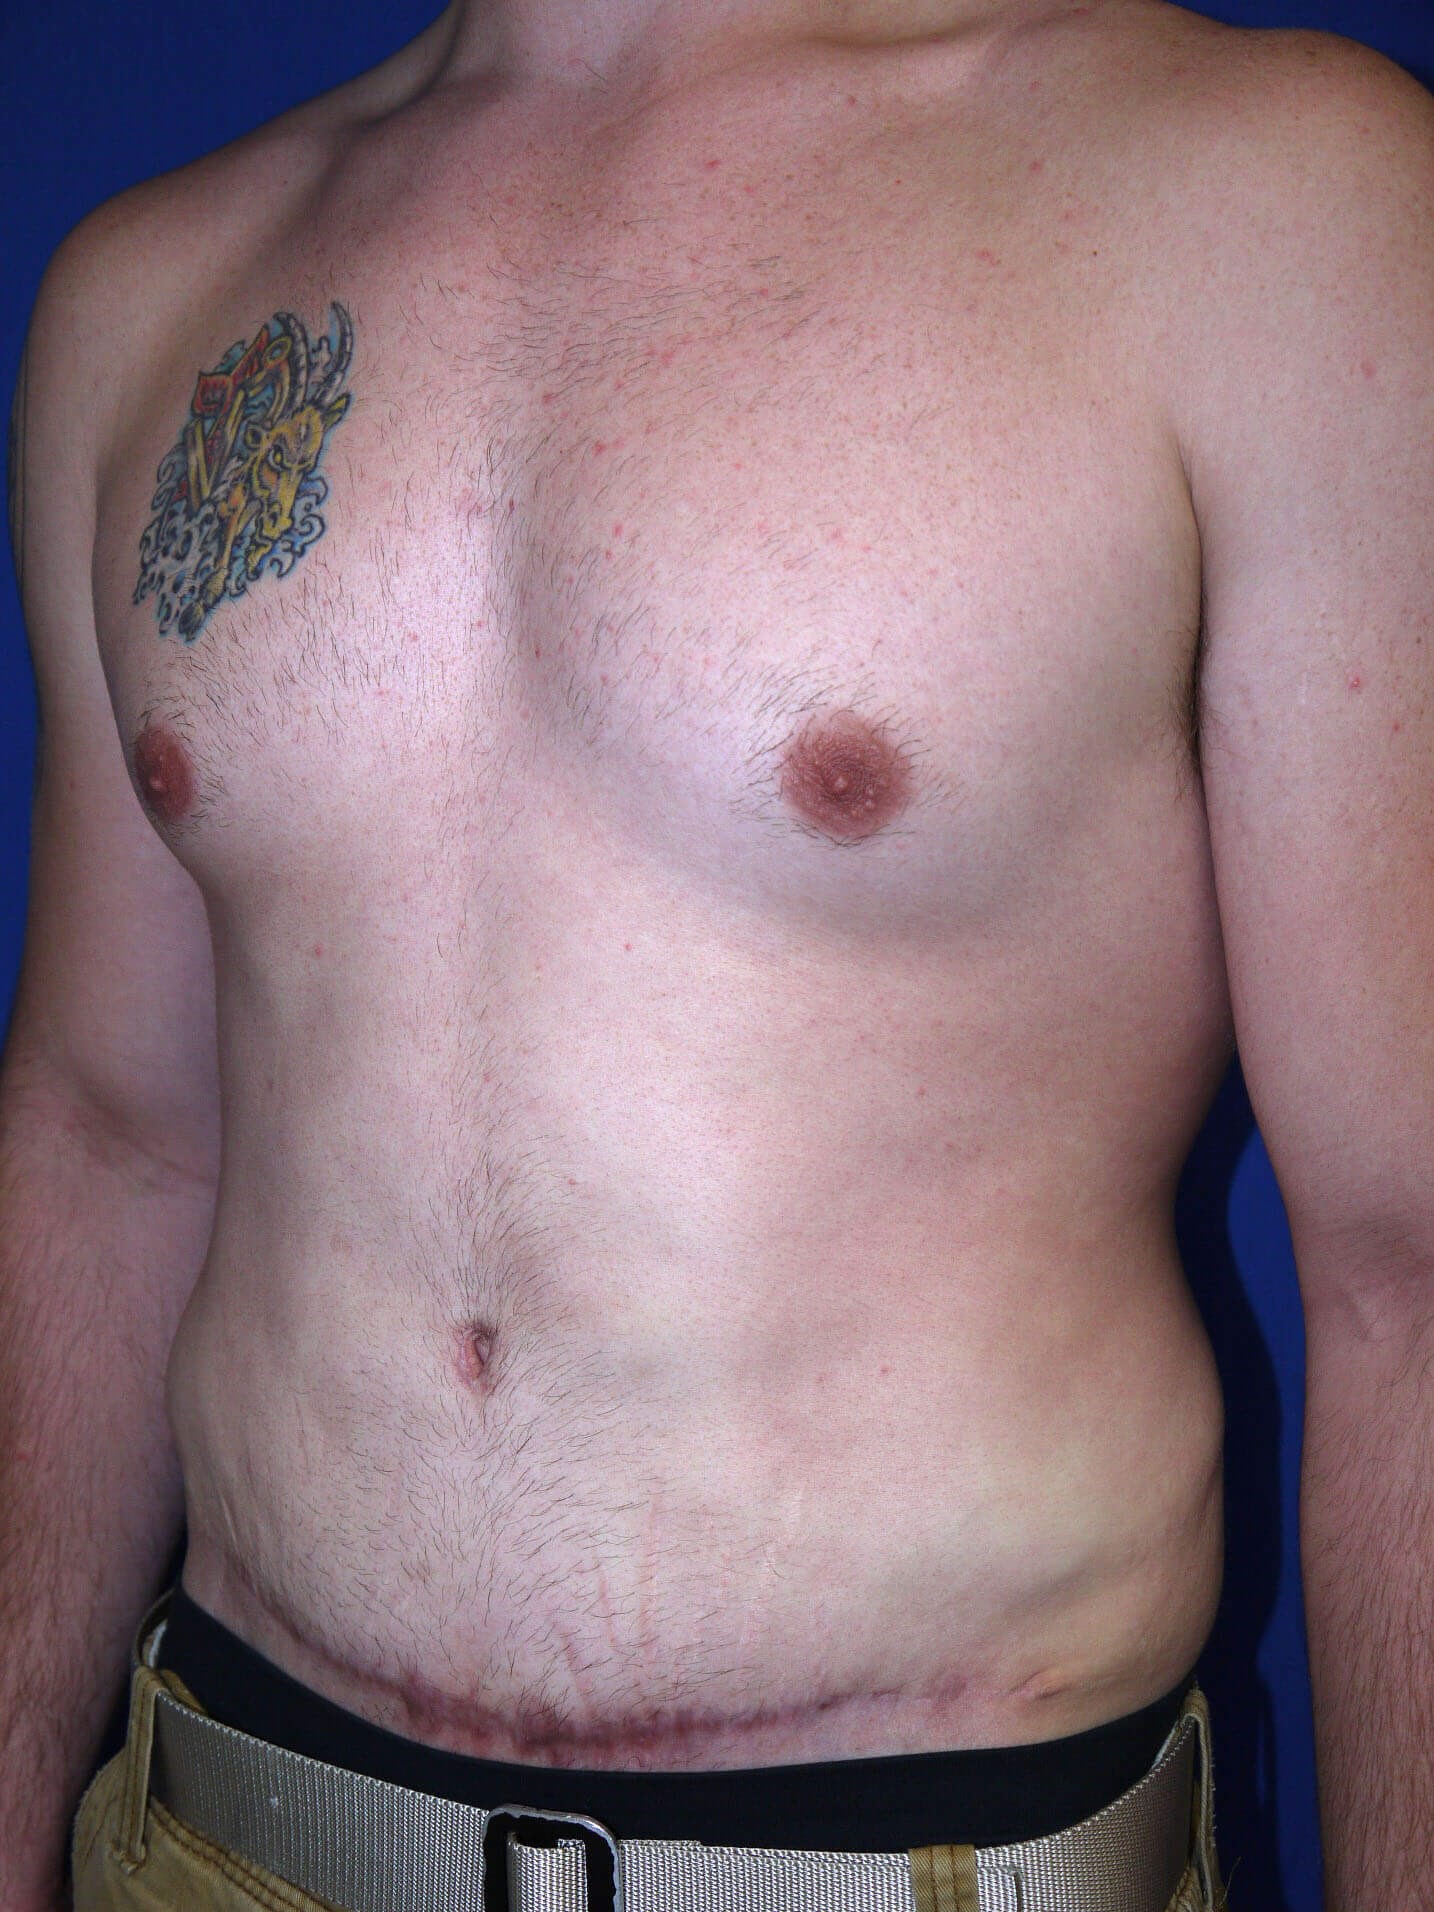 After Tummy Tuck After Weight Loss Surgery Left Oblique View - Left Oblique View